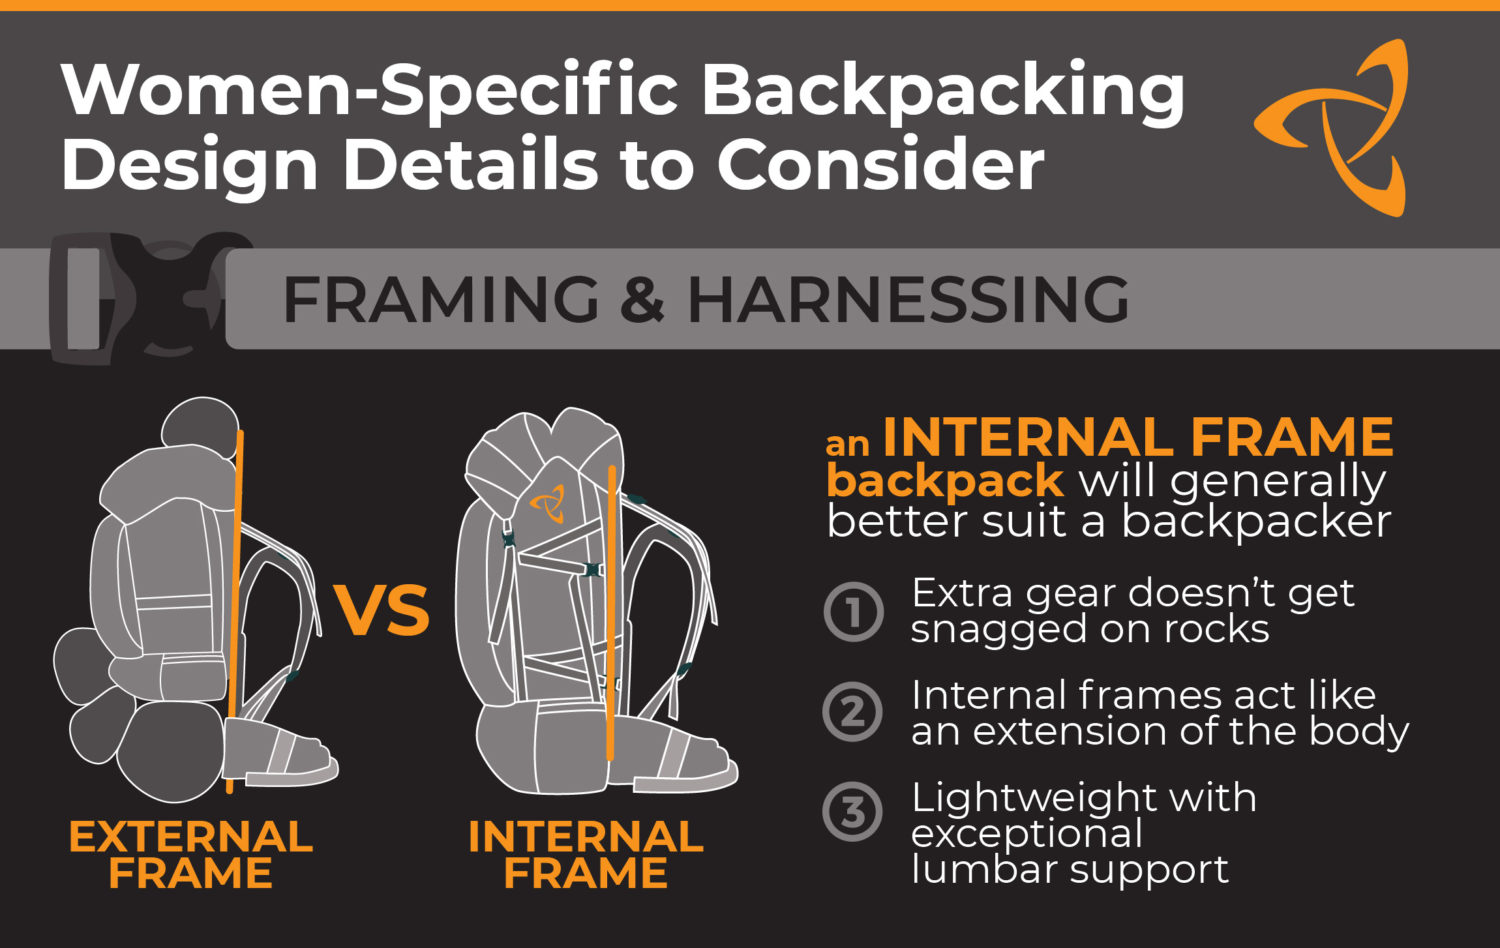 Women's-Specific Backpacking Design Details comparing internal and external frame